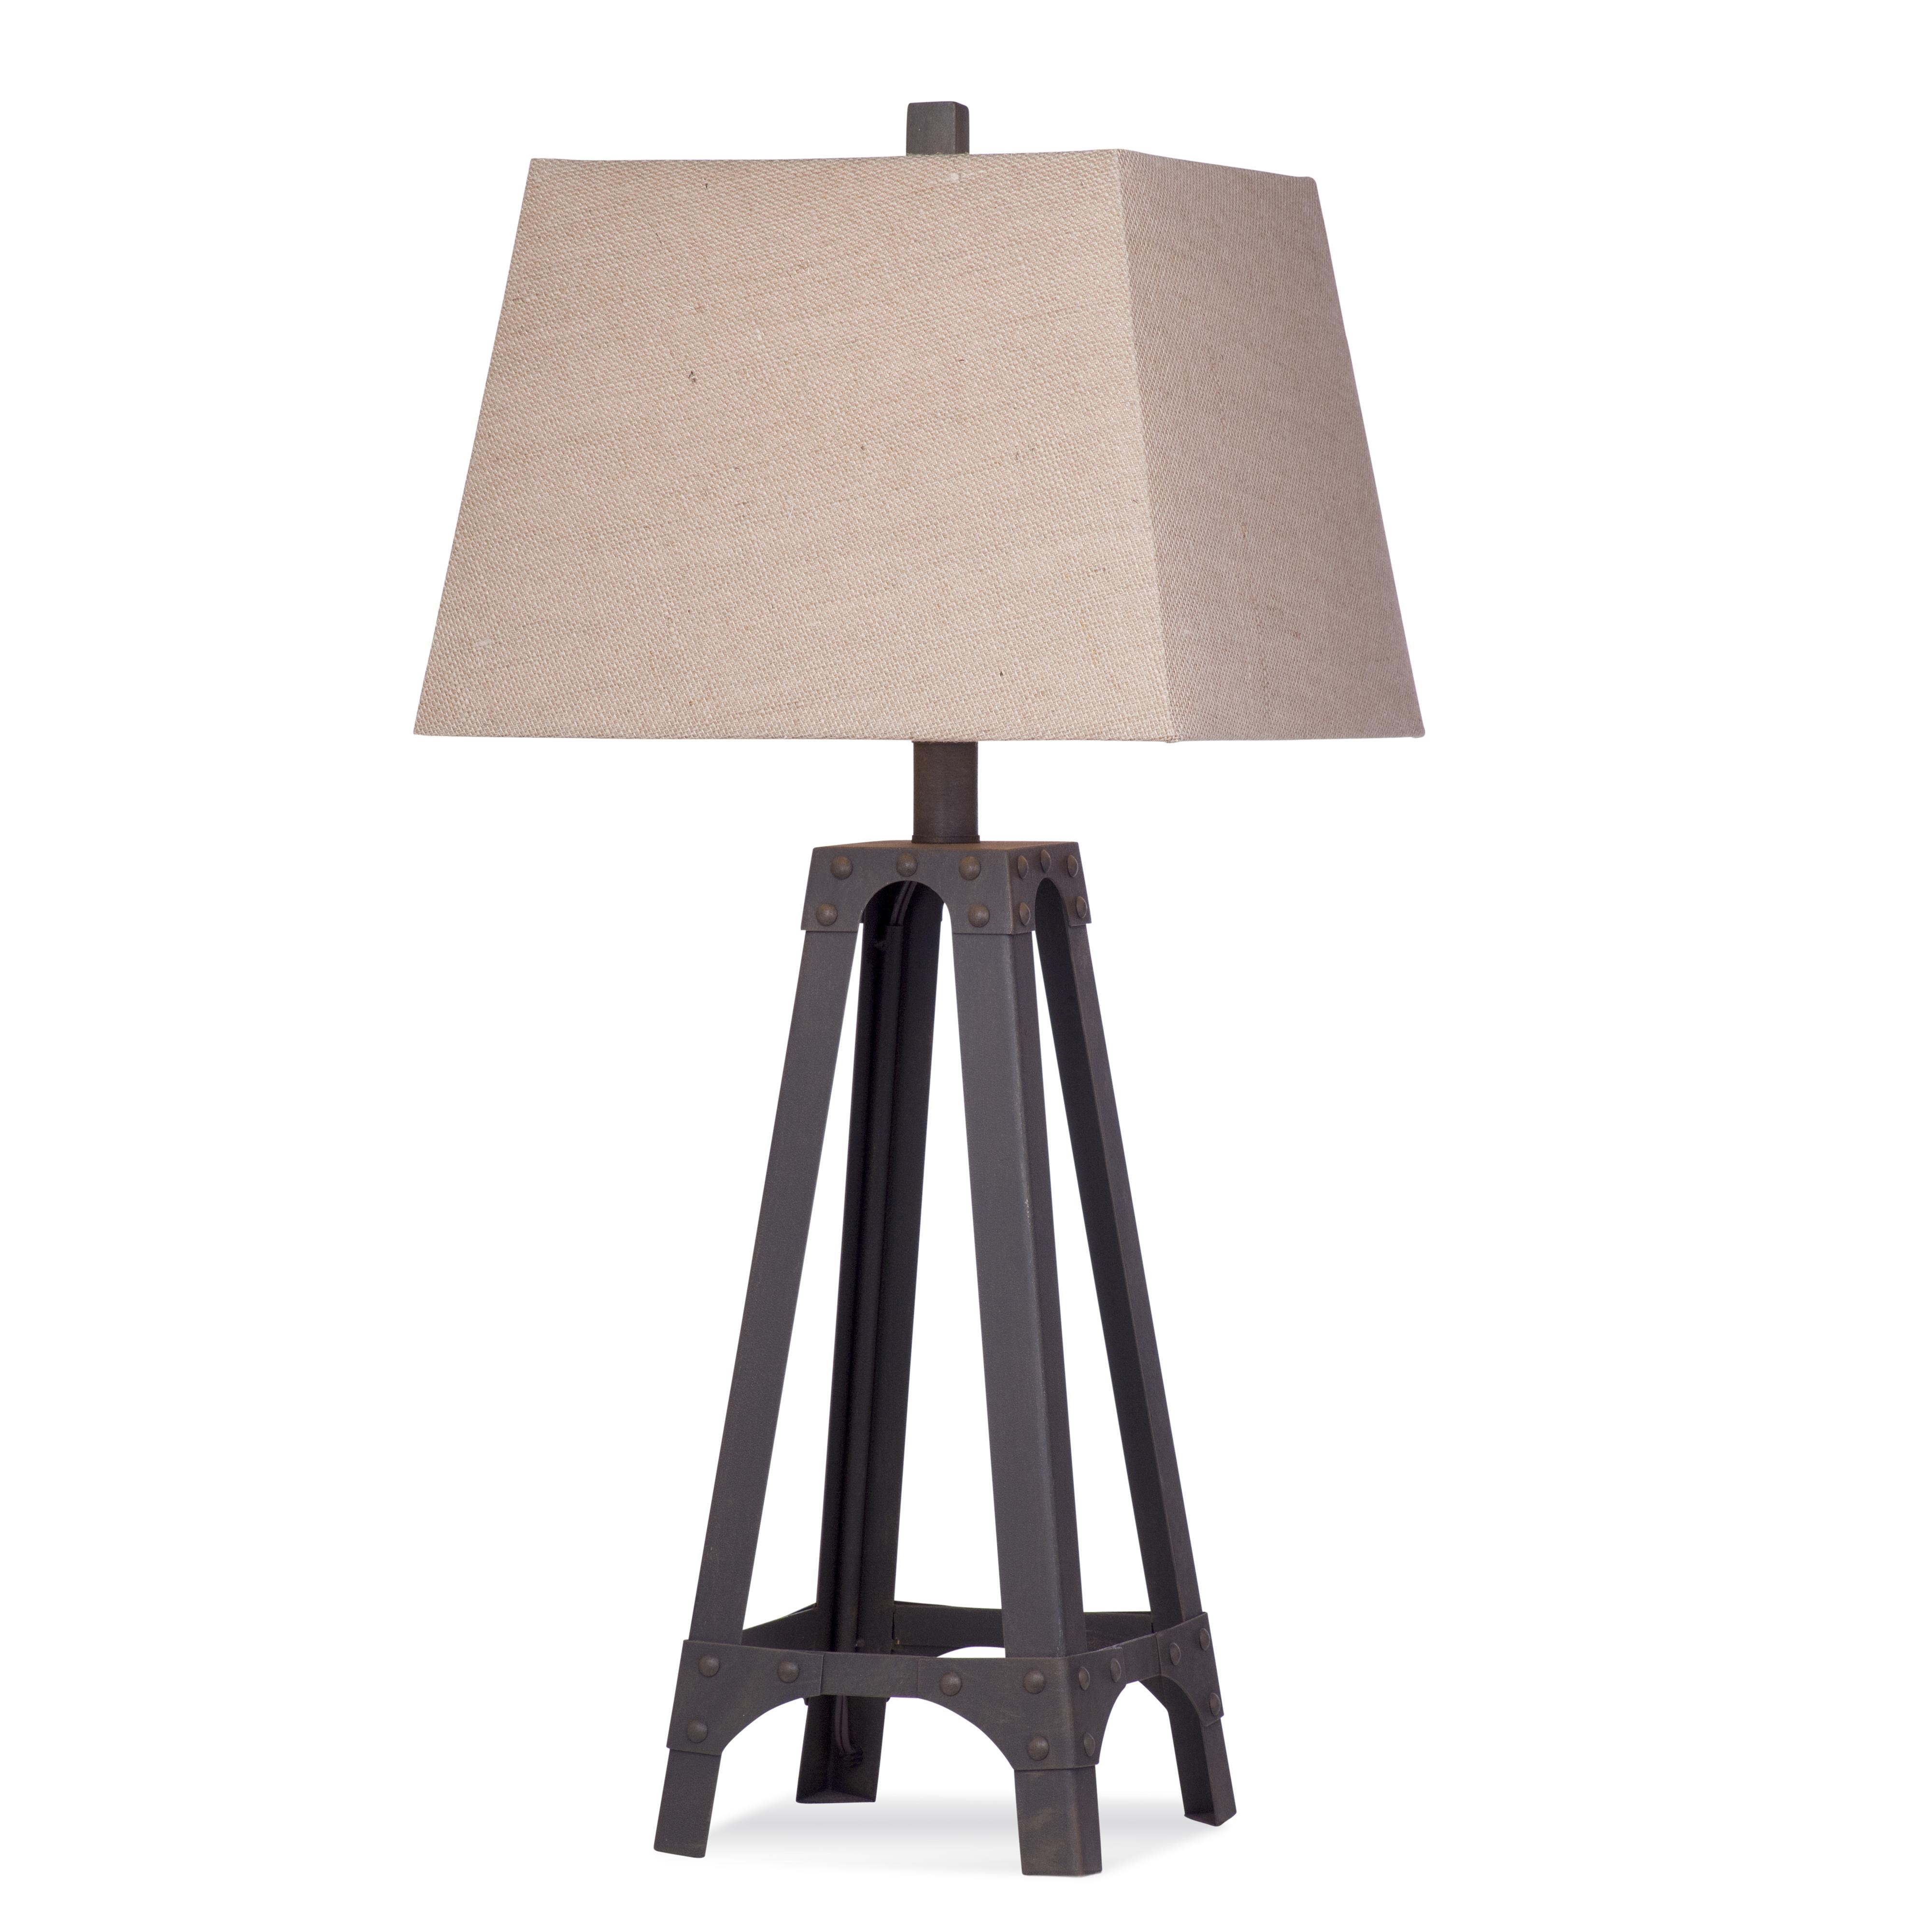 Belgian Luxe Blackwell Table Lamp by Bassett Mirror at Alison Craig Home Furnishings